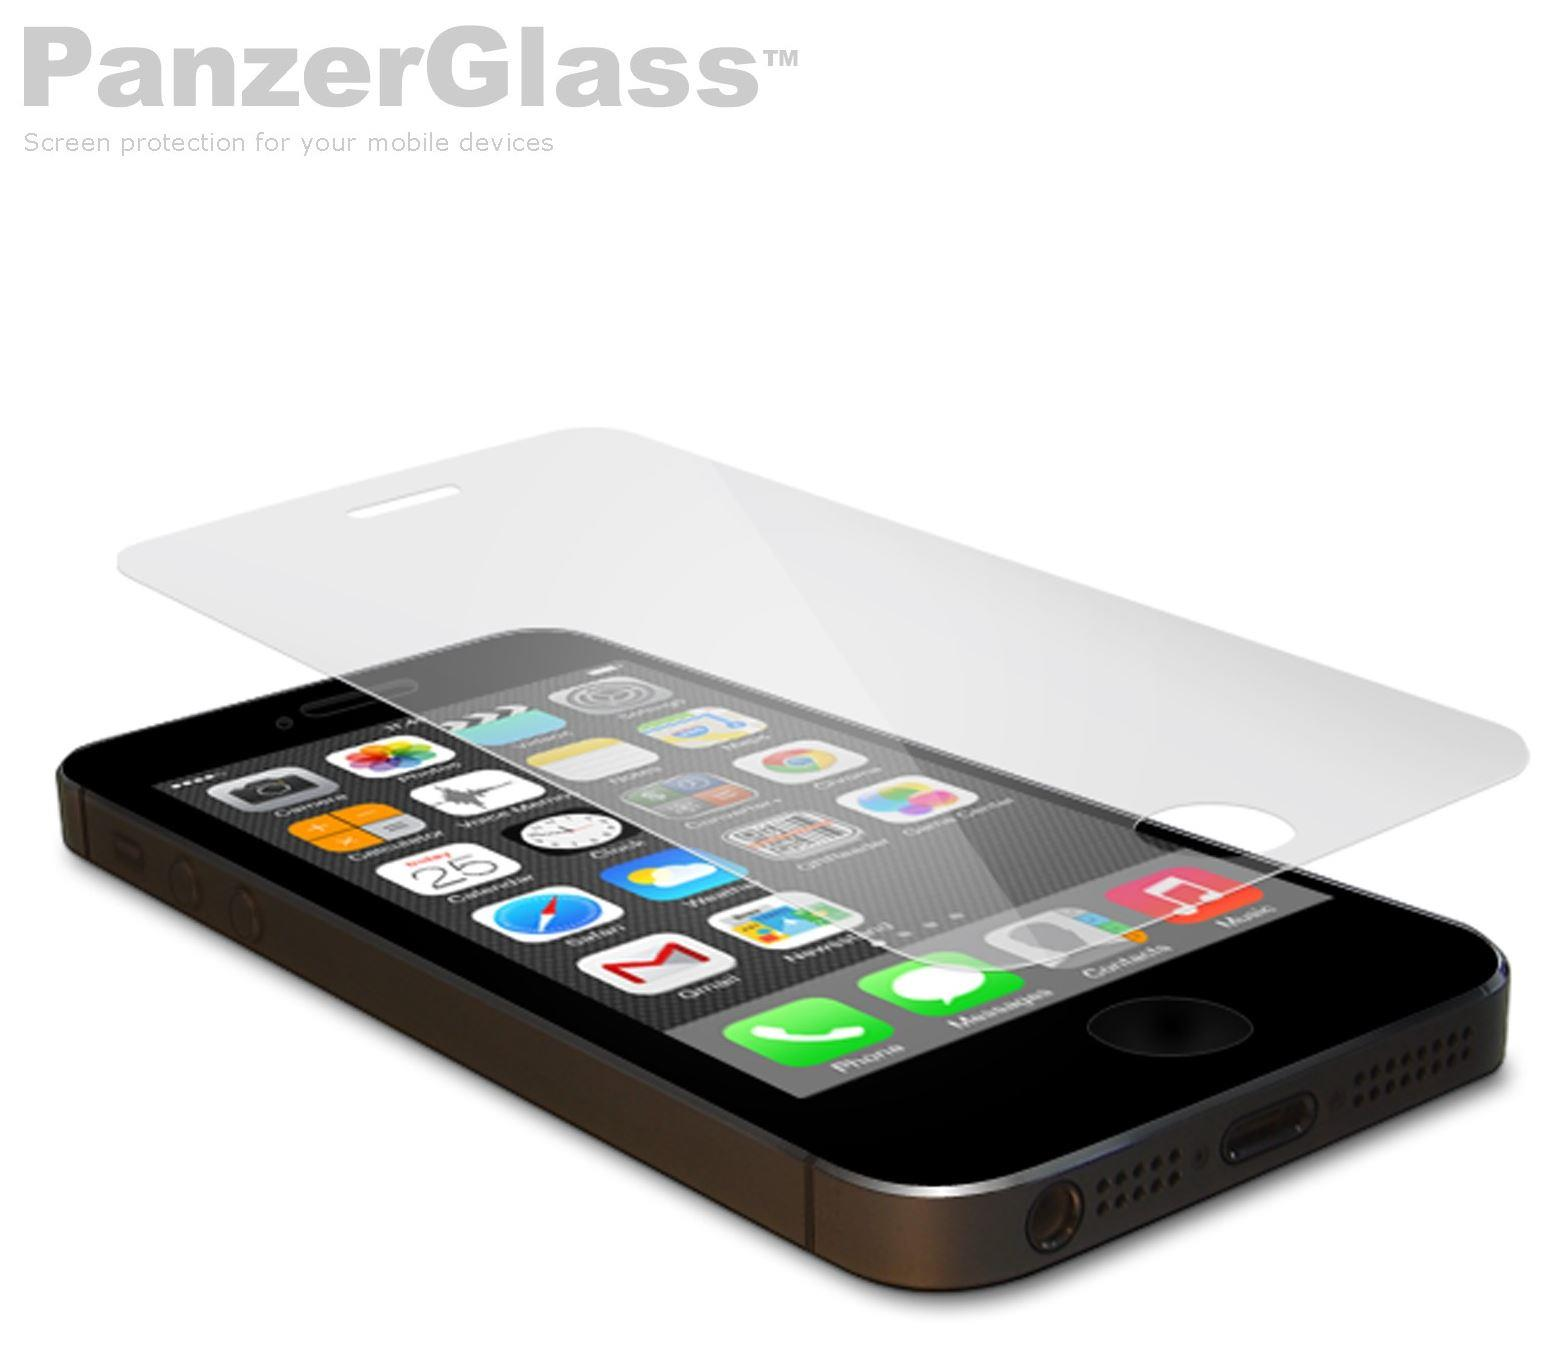 OCHR. FOLIE DISPLEJE PanzerGlass APPLE IPHONE 6/6S/7/8